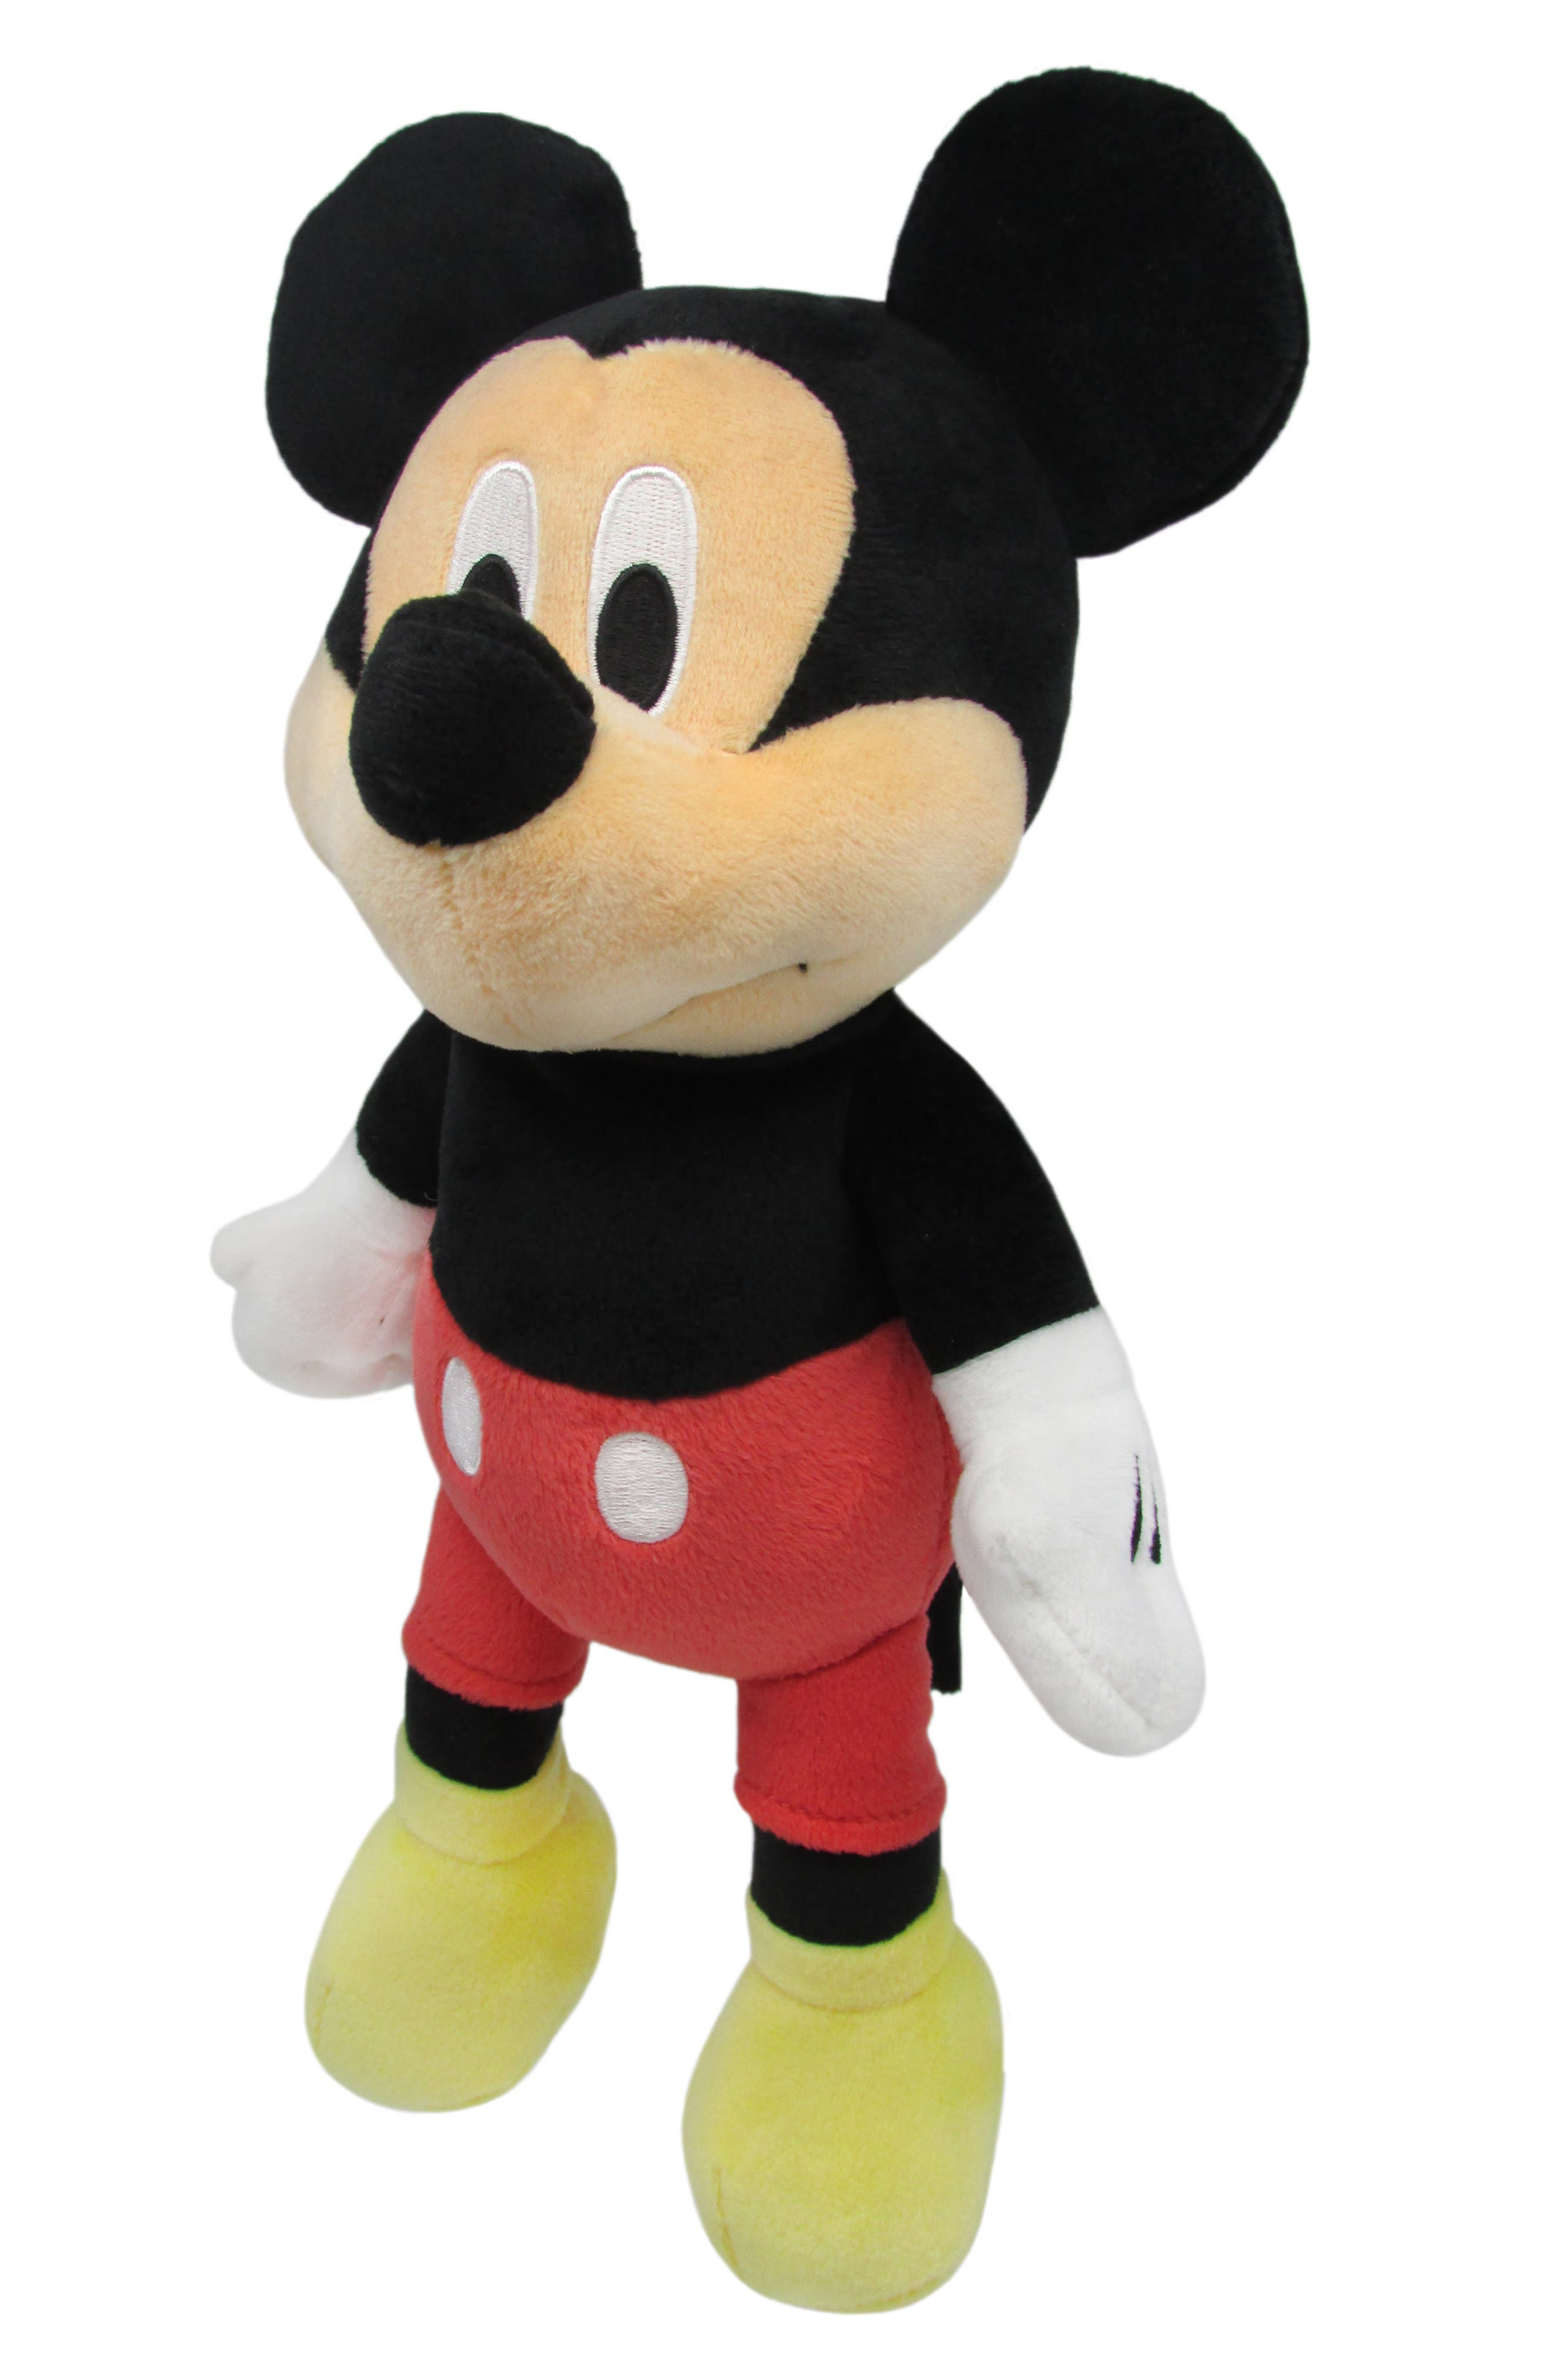 KIDS PREFERRED Mickey Mouse Plush Toy, Main, color, MULTICOLOR